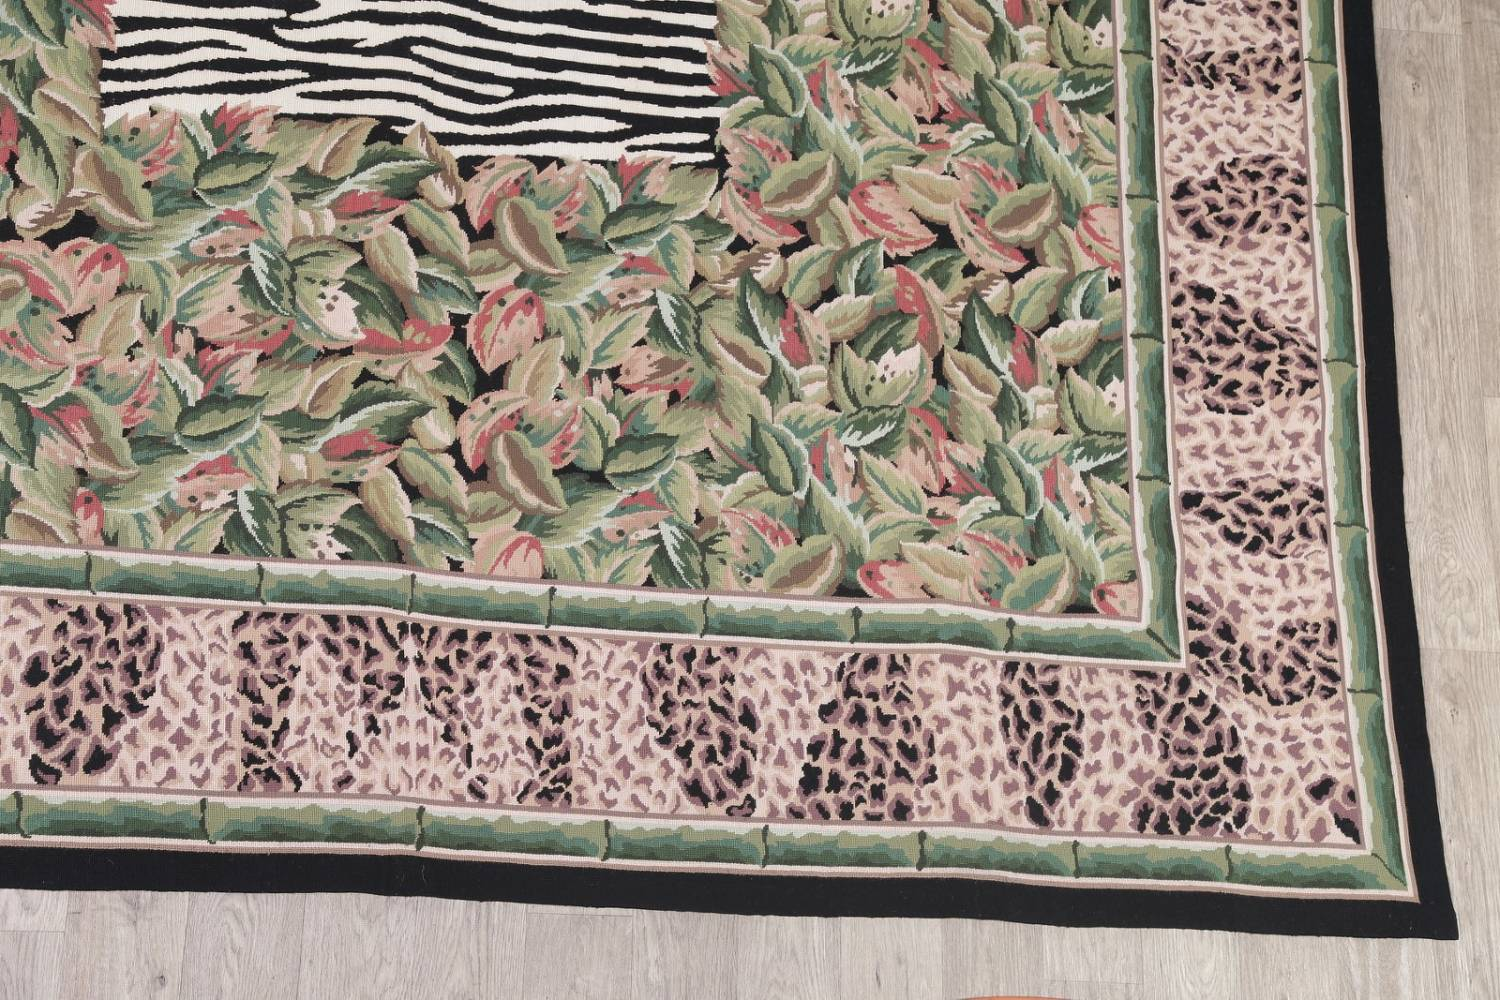 Transitional Animal PrintAubusson Chinese Hand-Woven Area Rug 10X14 image 6